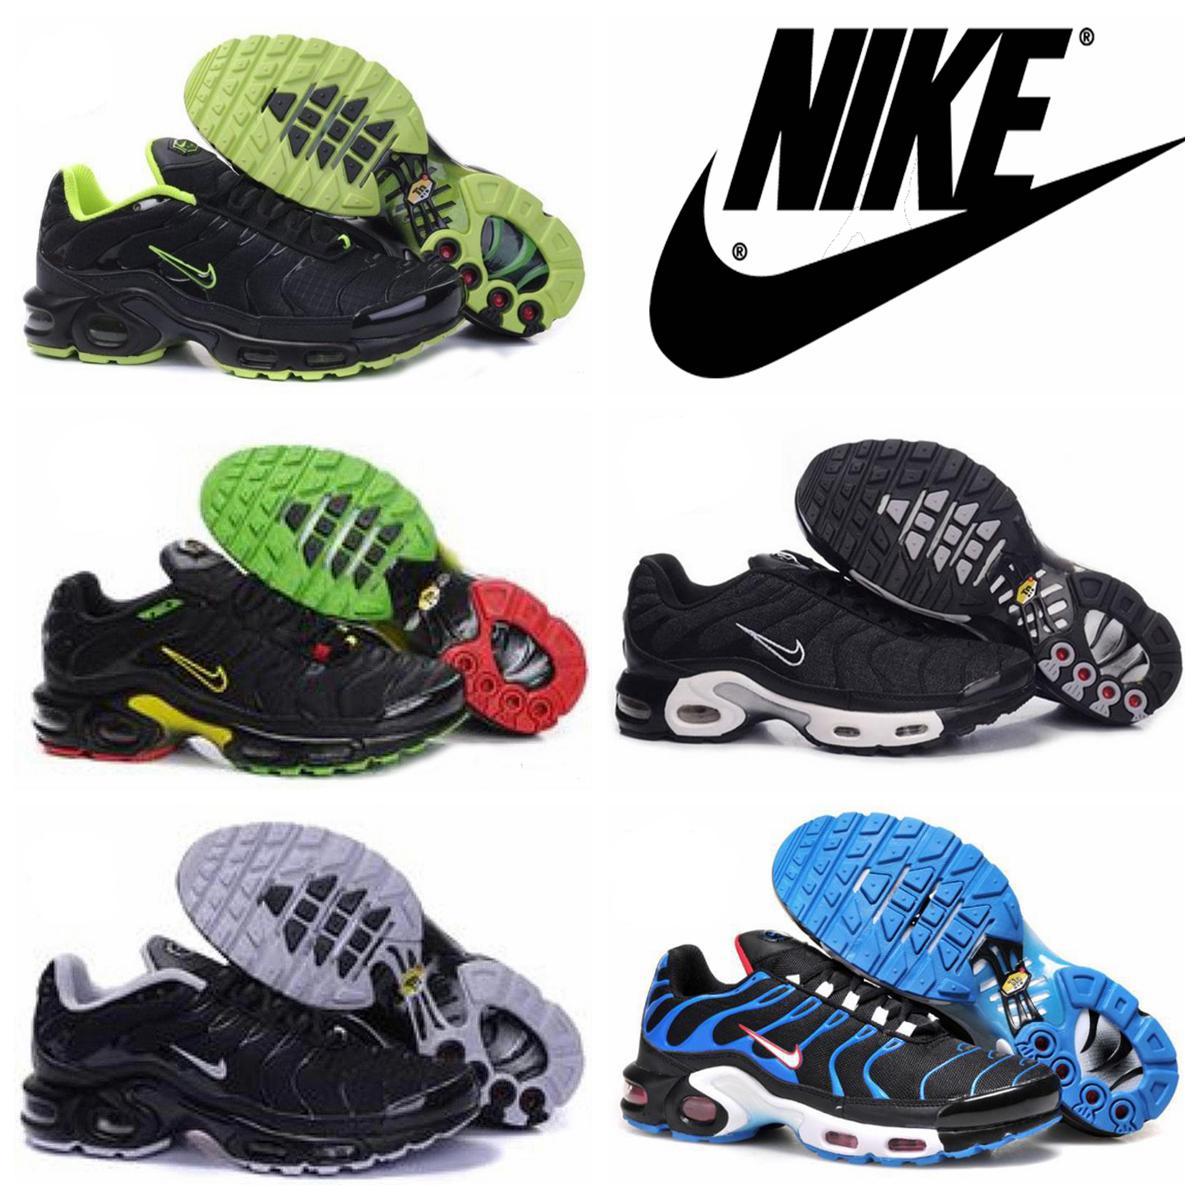 best website 7a137 10c2d nike air max tn dhgate